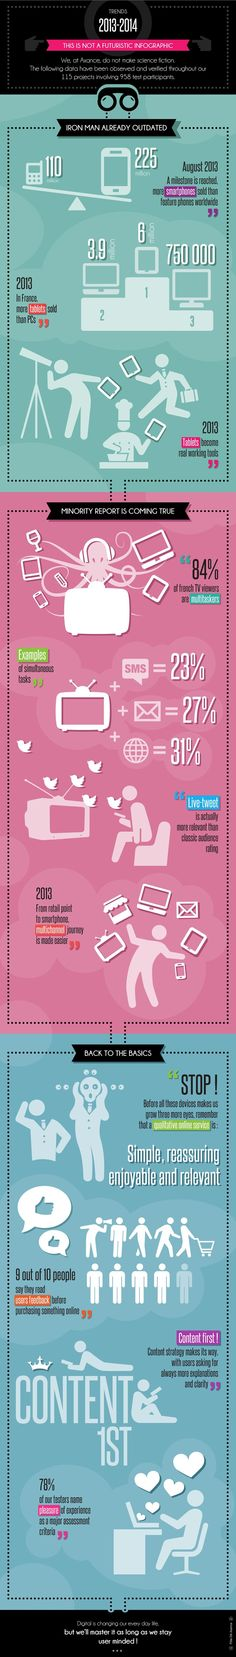 The Digital Trends From 2013 - 2014 - infographic -911Branding